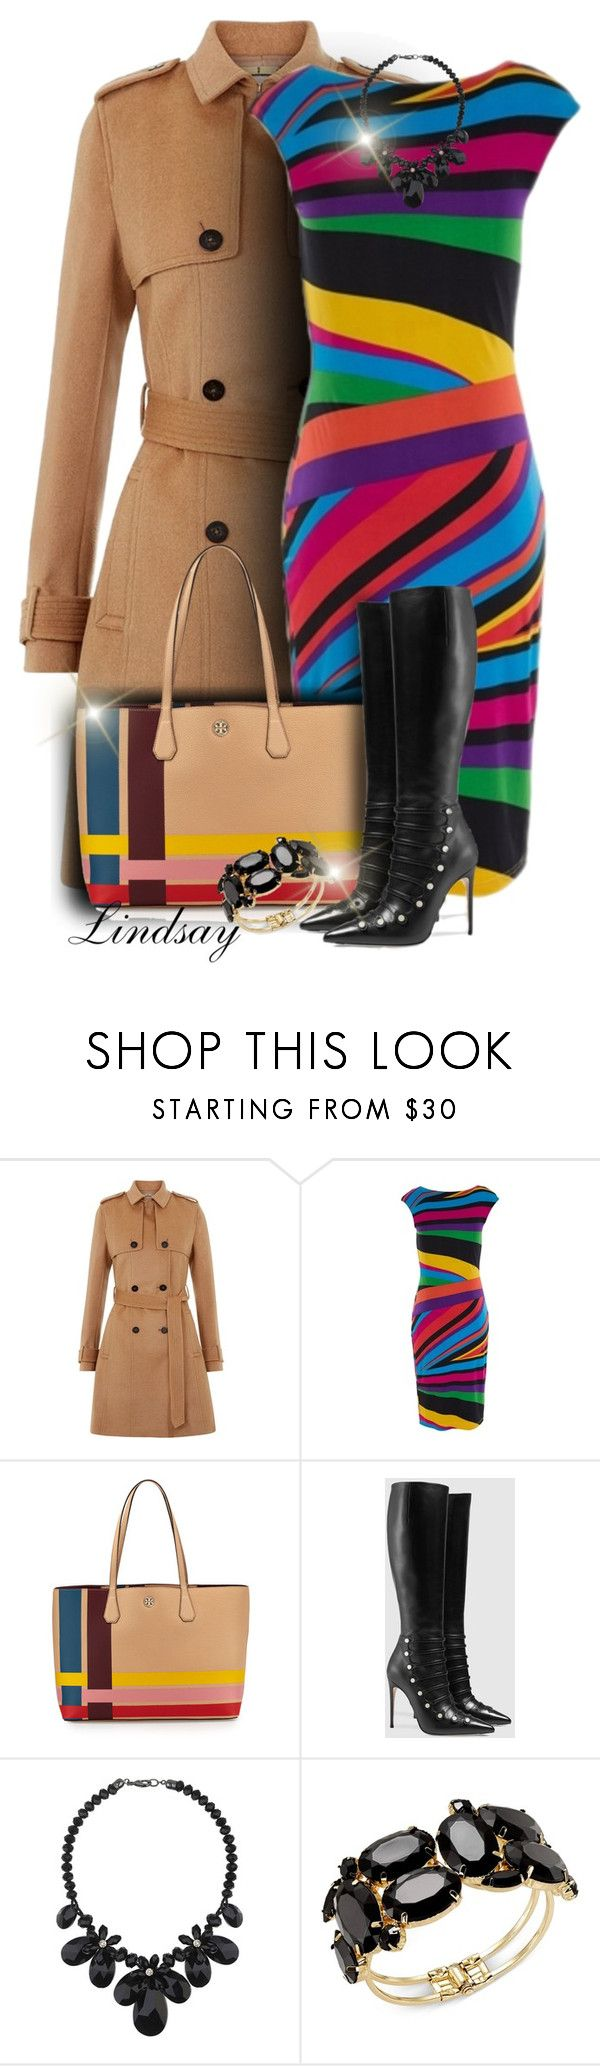 """""""Tory Burch Perry Variegated-Stripe Tote Bag"""" by lindsayd78 ❤ liked on Polyvore featuring Hobbs, Tory Burch, Gucci, Wallis and Thalia Sodi"""